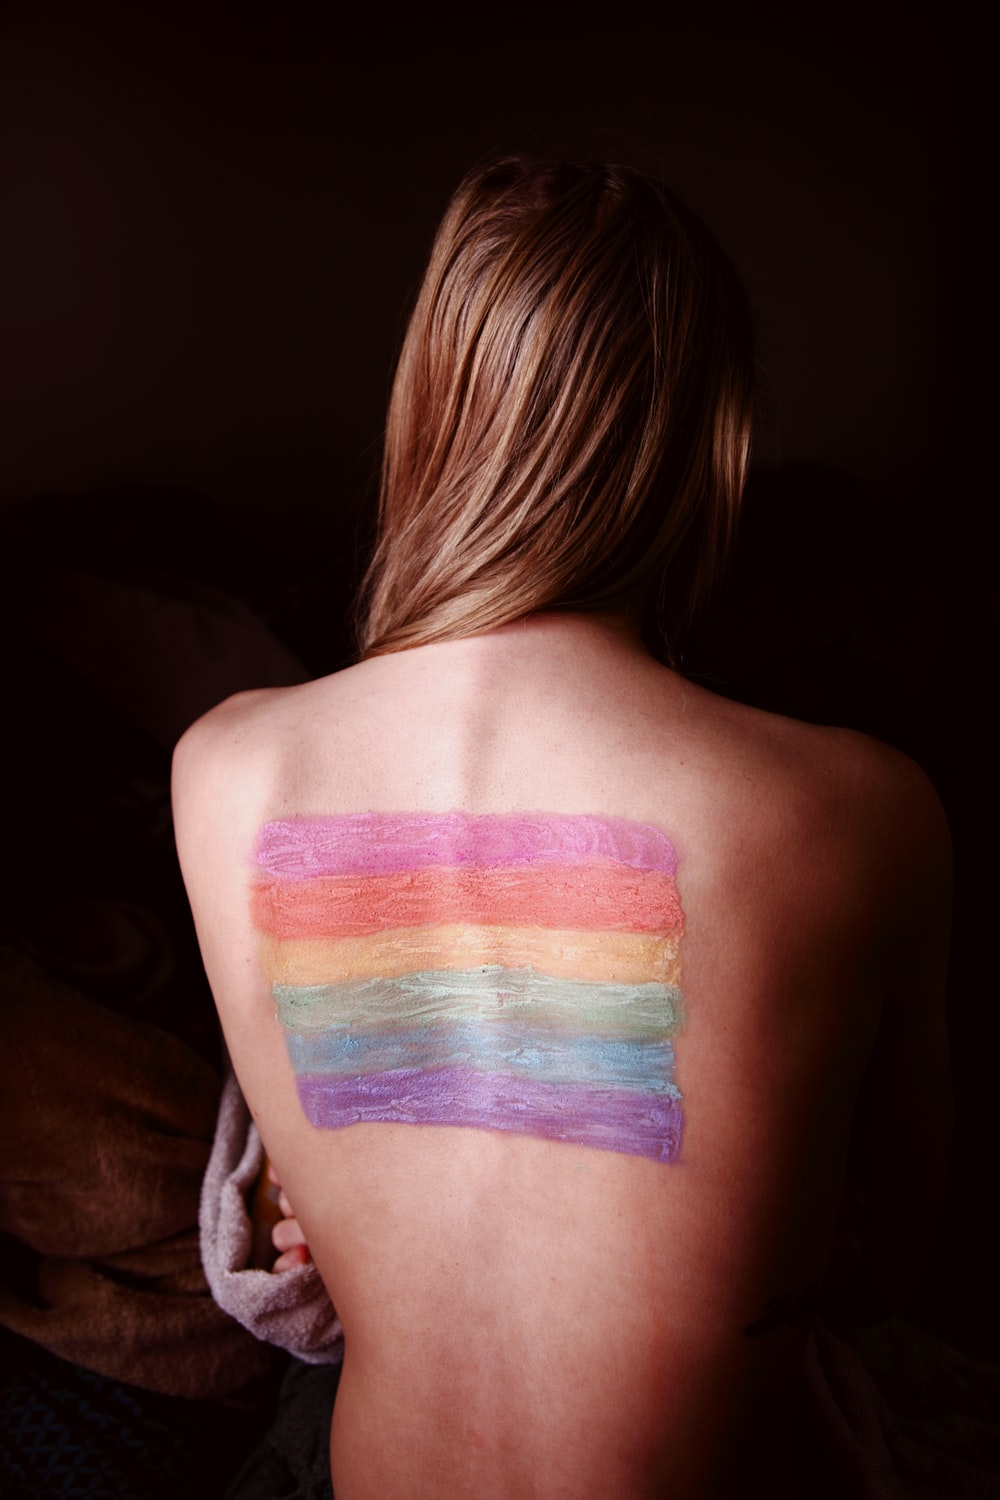 woman with blue and purple paint on her body